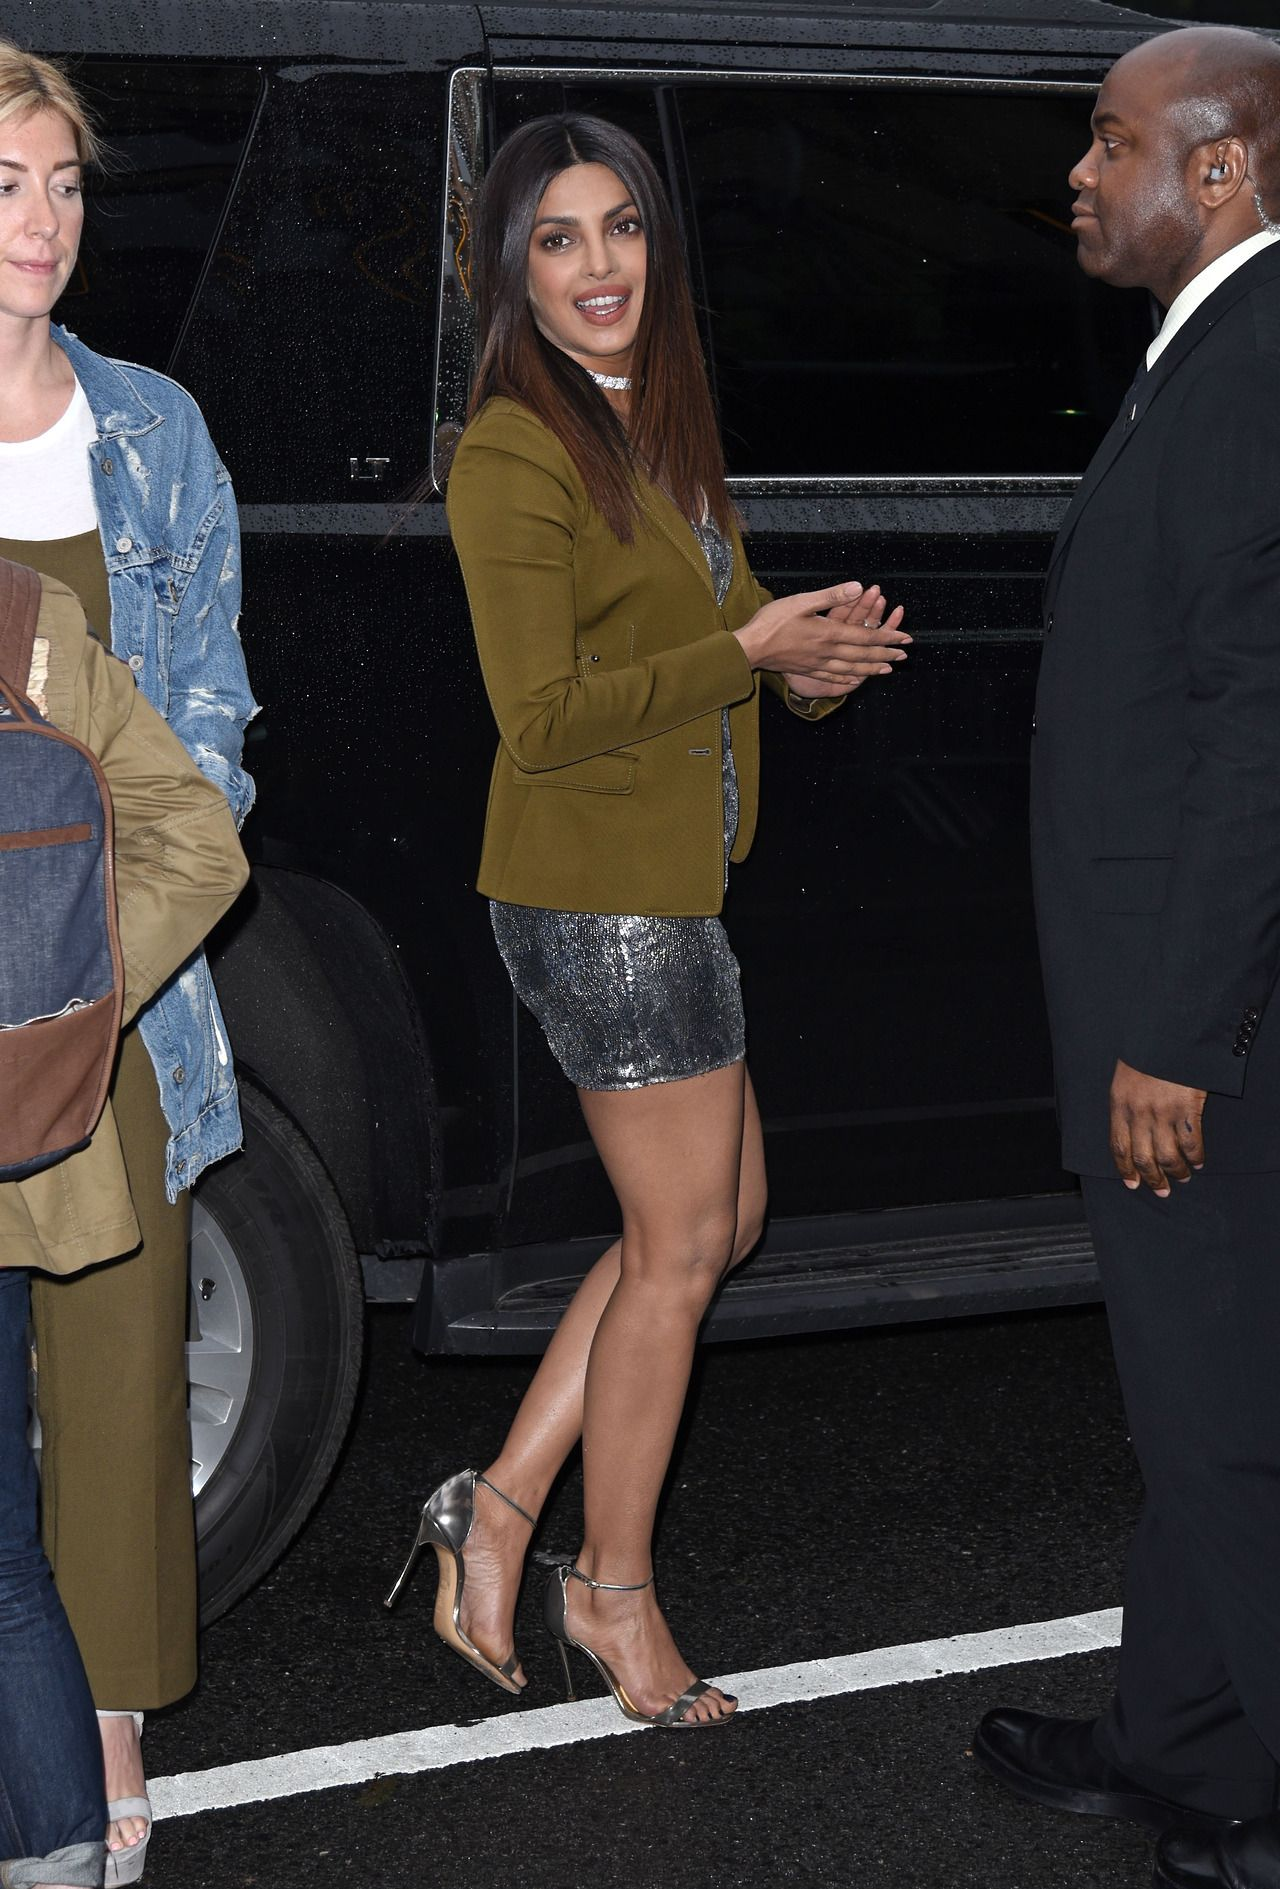 2d6cd7d0b294 Priyanka Chopra Displays Her Toned Sexy Legs At  Baywatch  Private  Screening At Landmark Sunshine Theater in New York. CLICK HERE TO SEE MORE  PHOTOS FROM ...